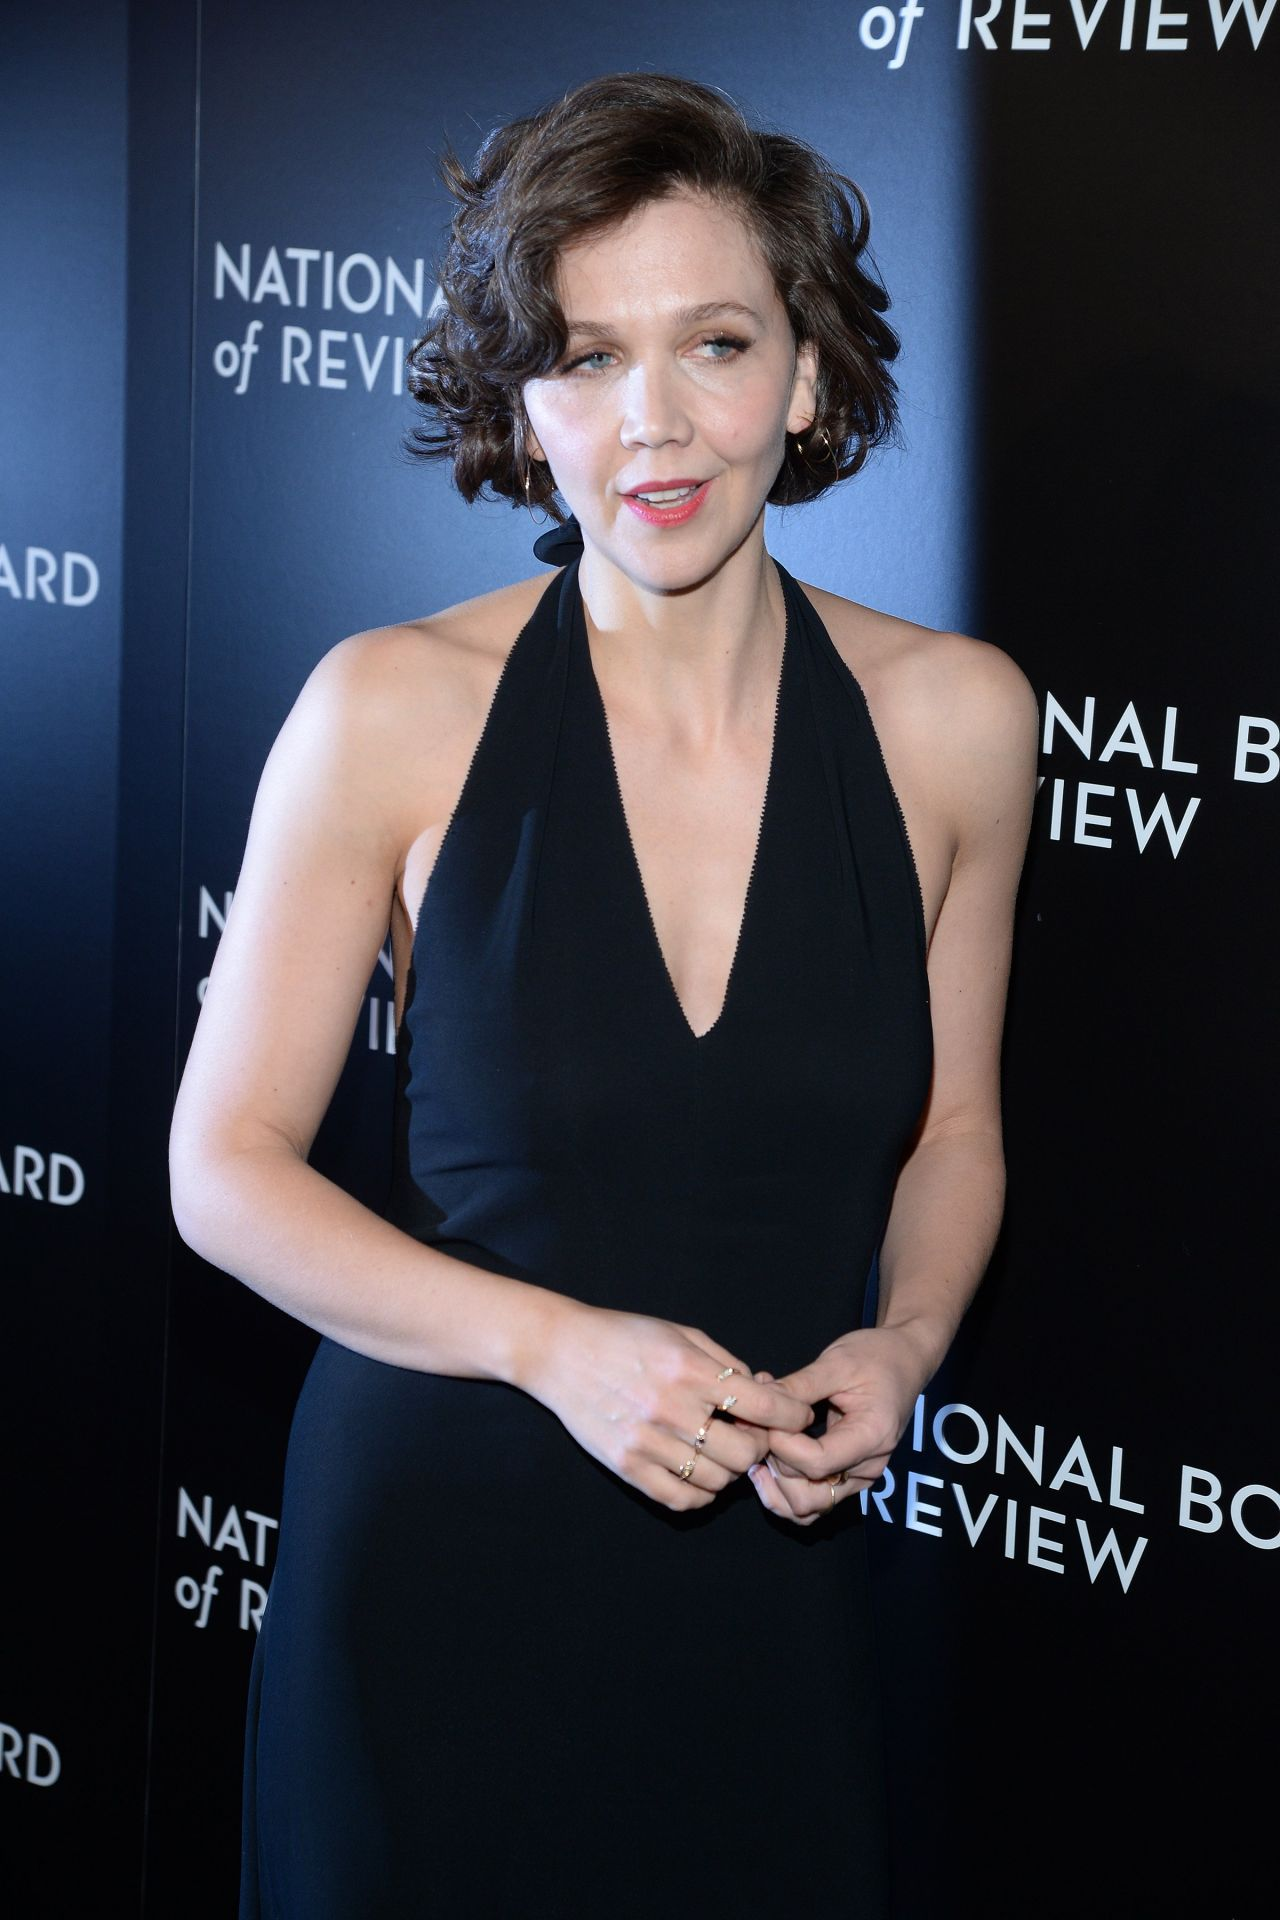 maggie-gyllenhaal-2015-national-board-of-review-awards-gala-in-new-york-city-14